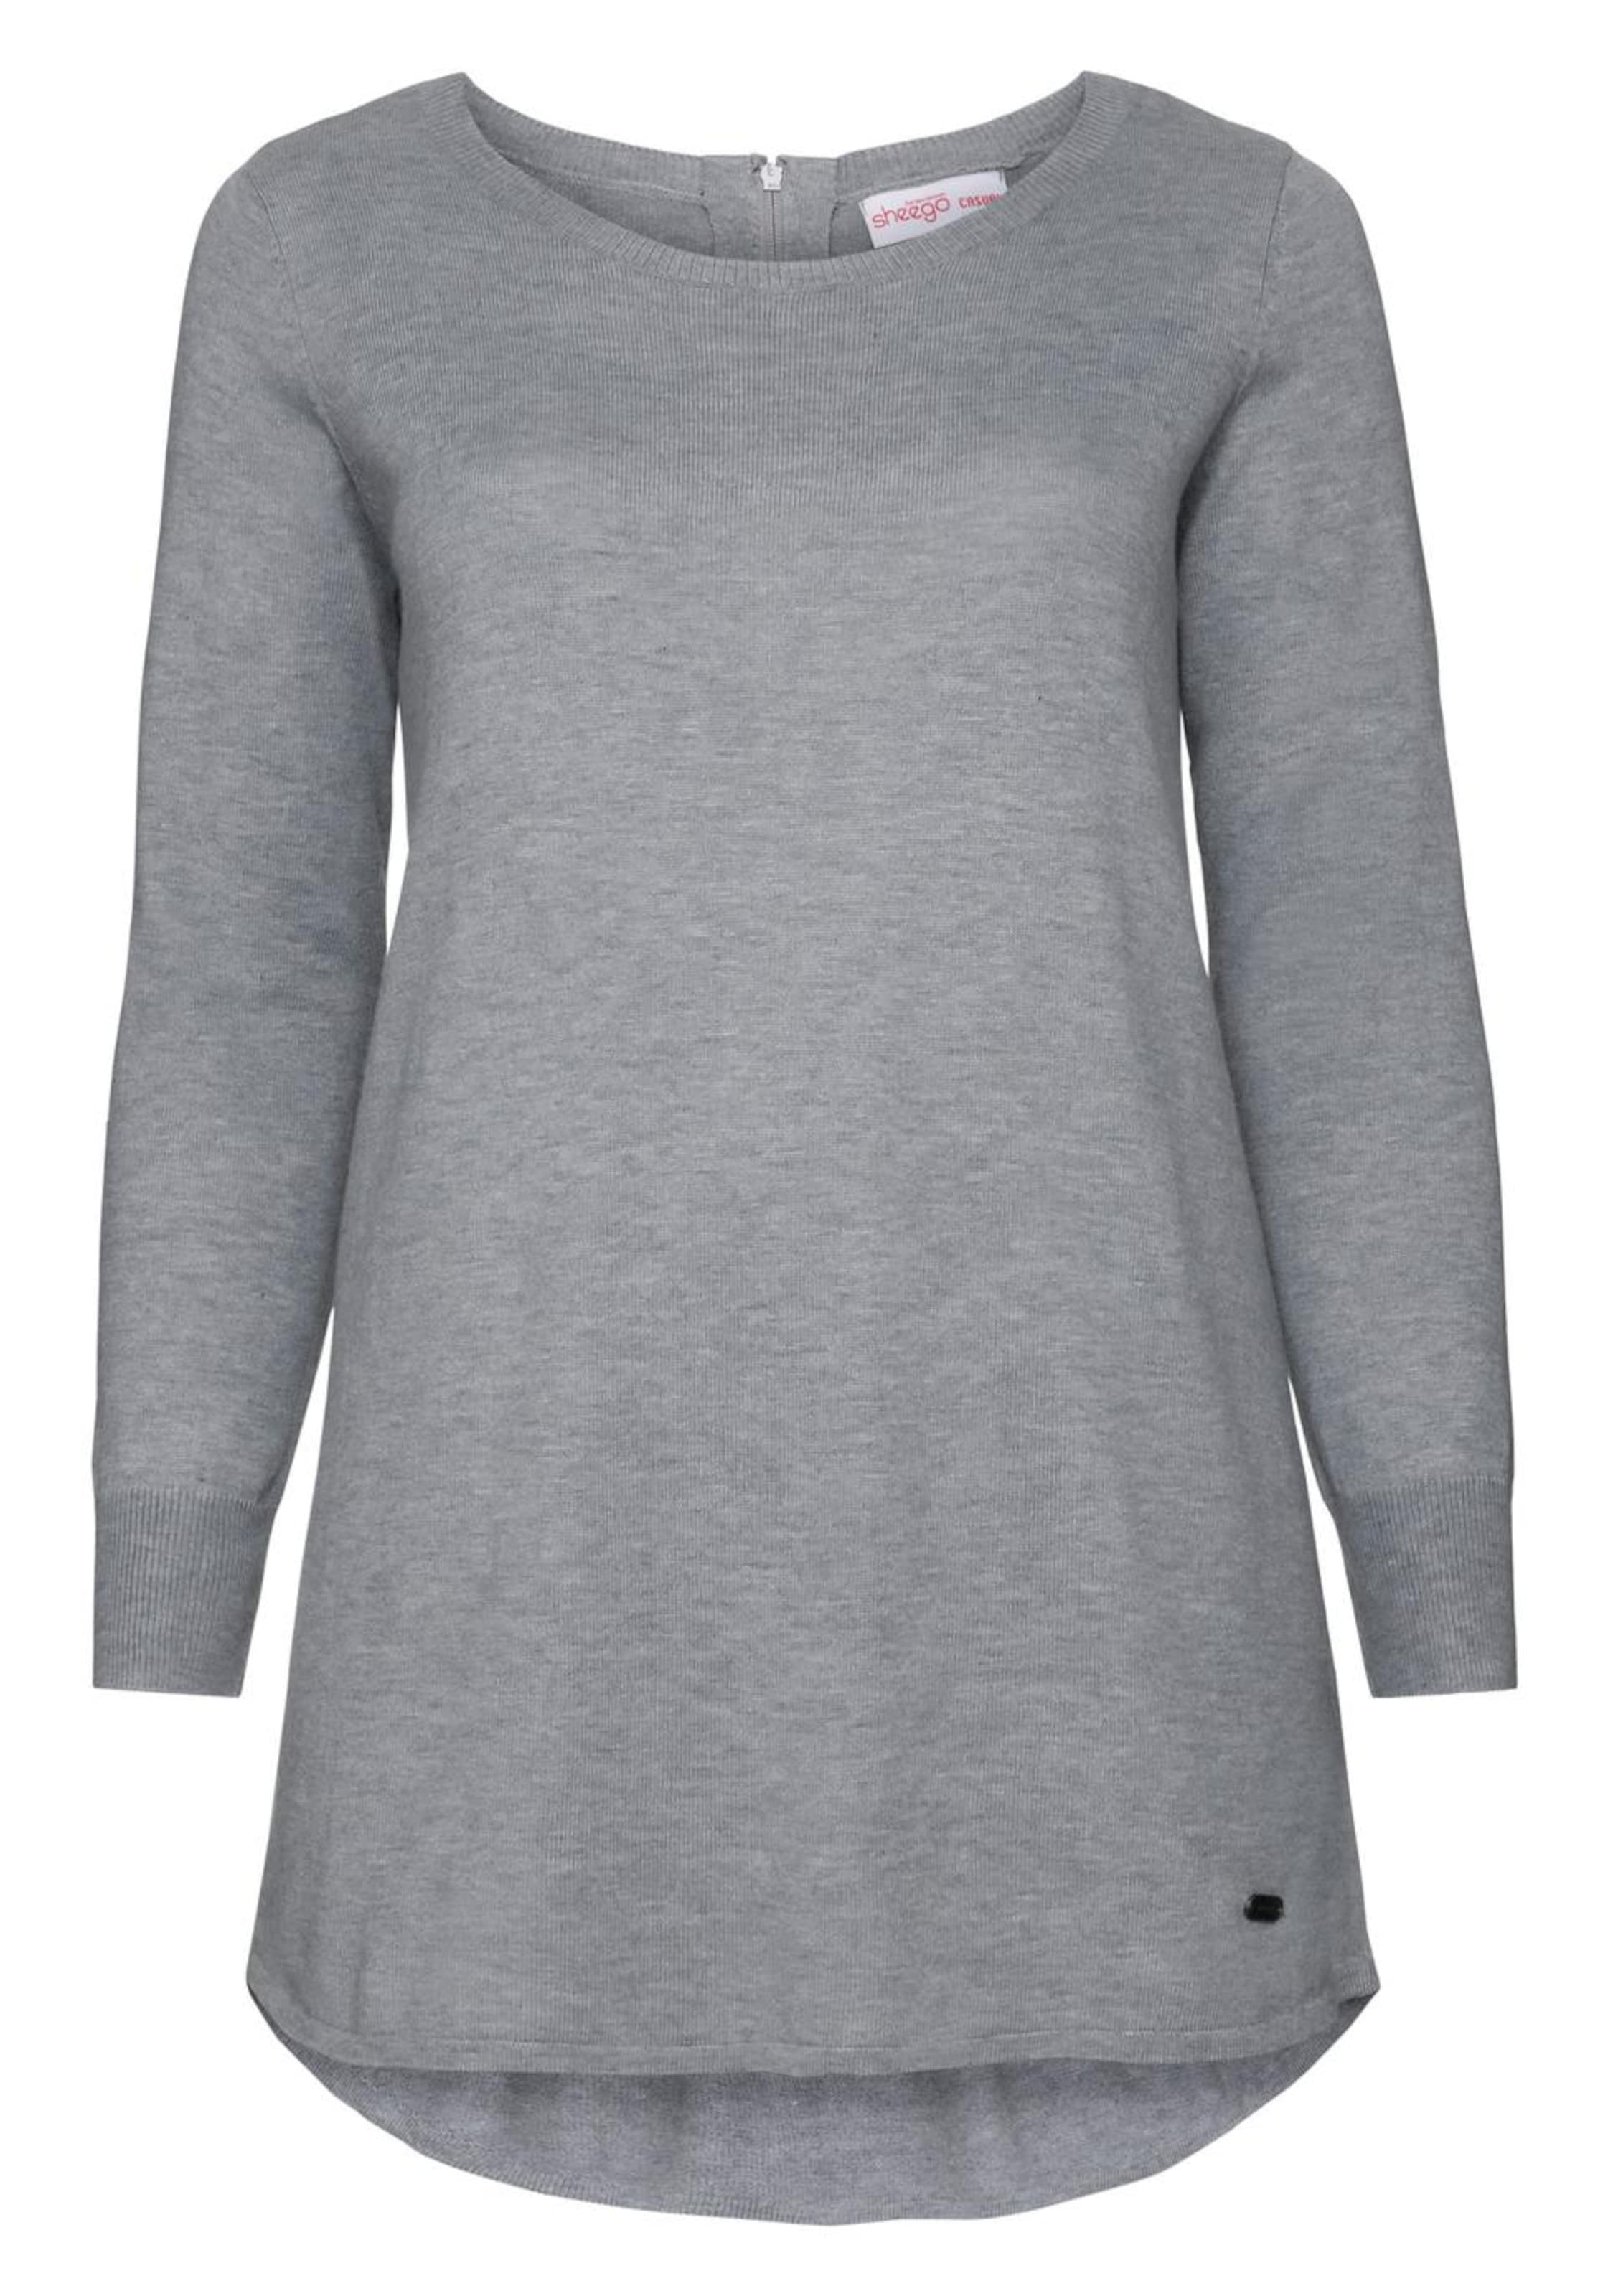 Casual Sheego Casual Grau Longpullover In Sheego Longpullover In gyf7Yb6